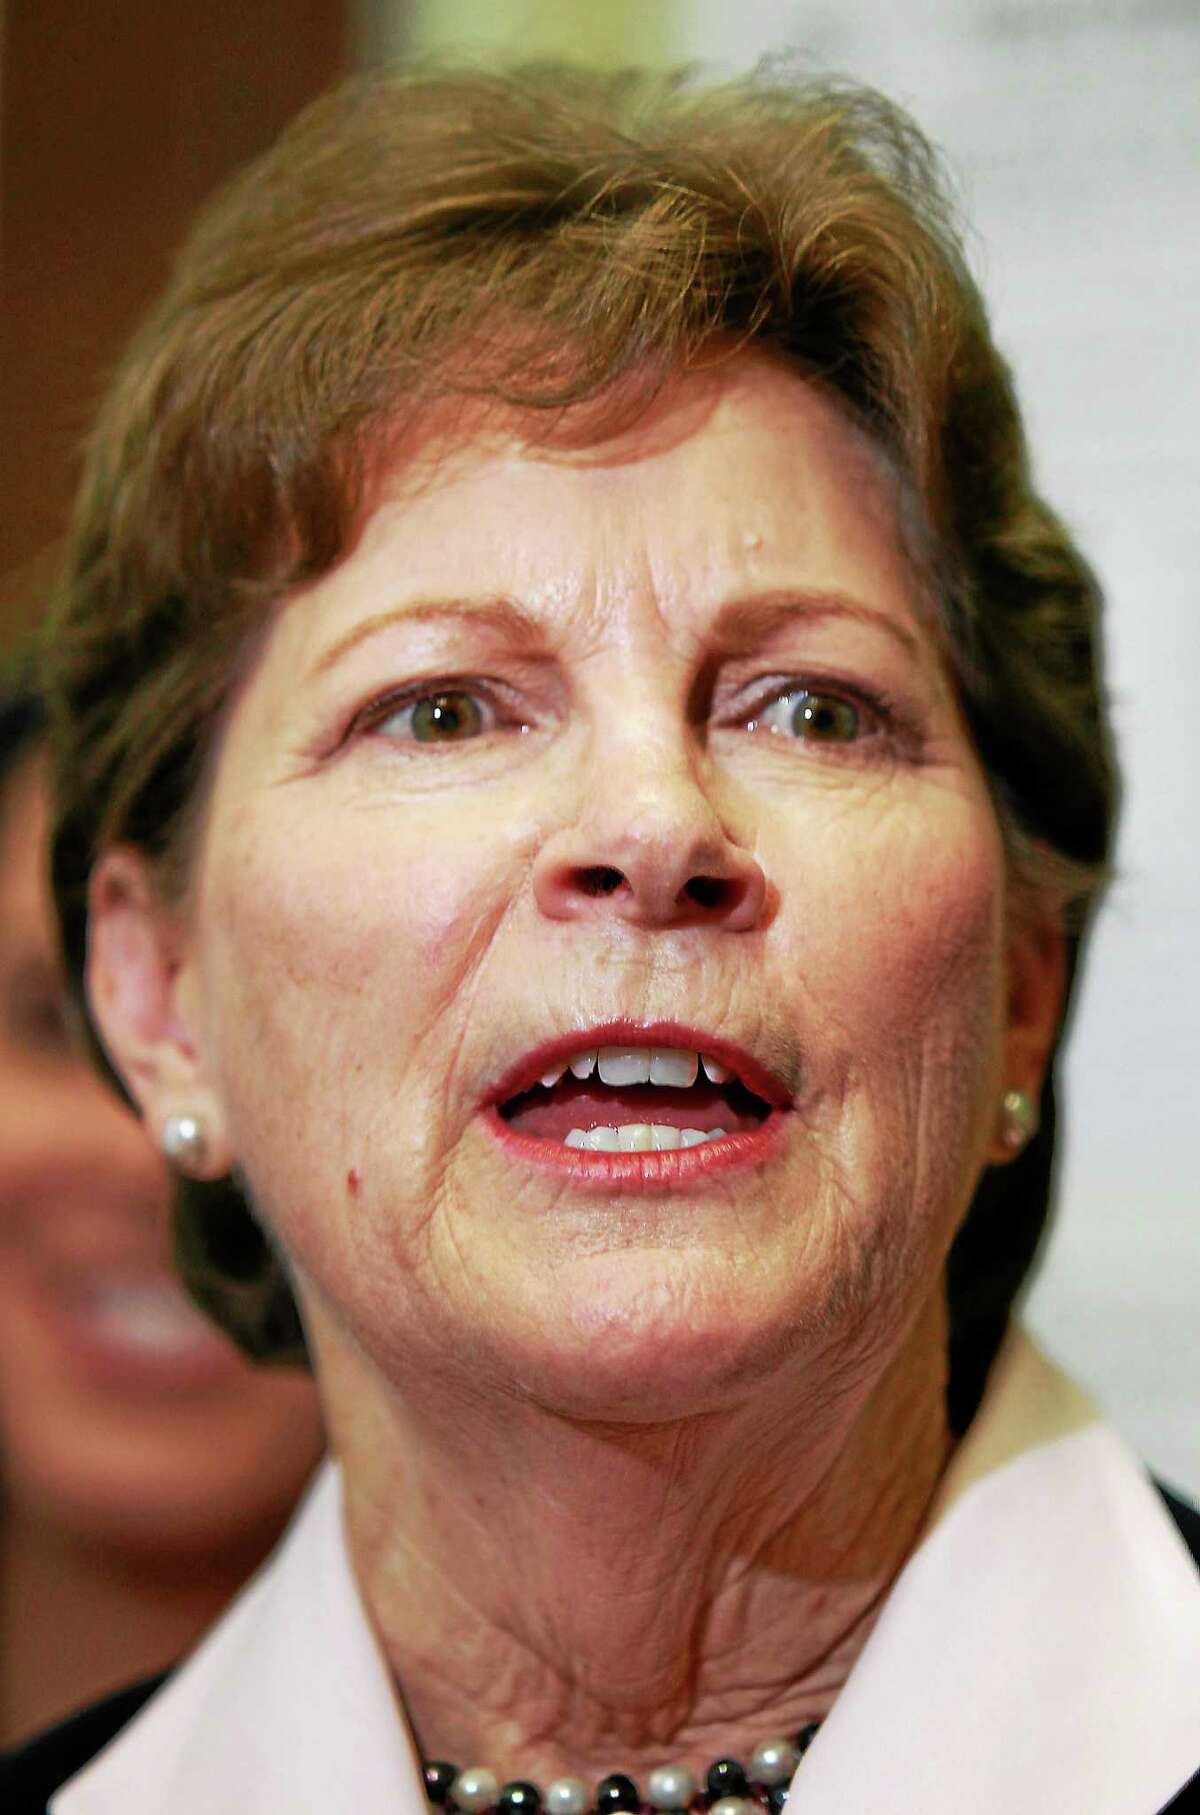 In a June 9, 2014 photo, U.S. Sen. Jeanne Shaheen D-N.H. talks about her plans if she wins re-election after filing her campaign paperwork to seek re-election at the Secretary of State's office in Concord, N.H.